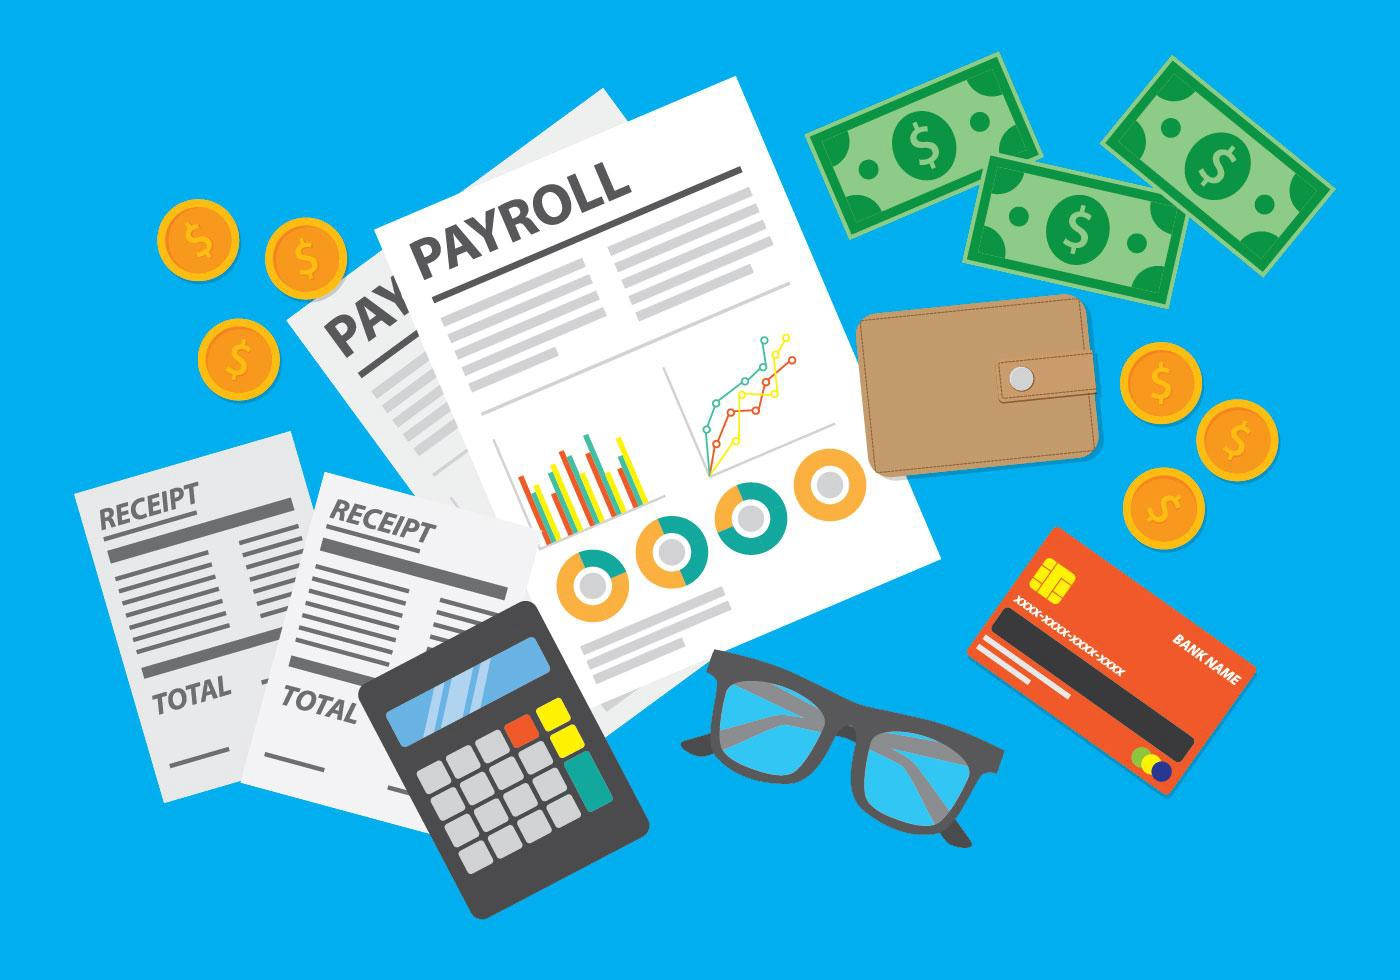 Why should you pay attention to payroll and compliance?